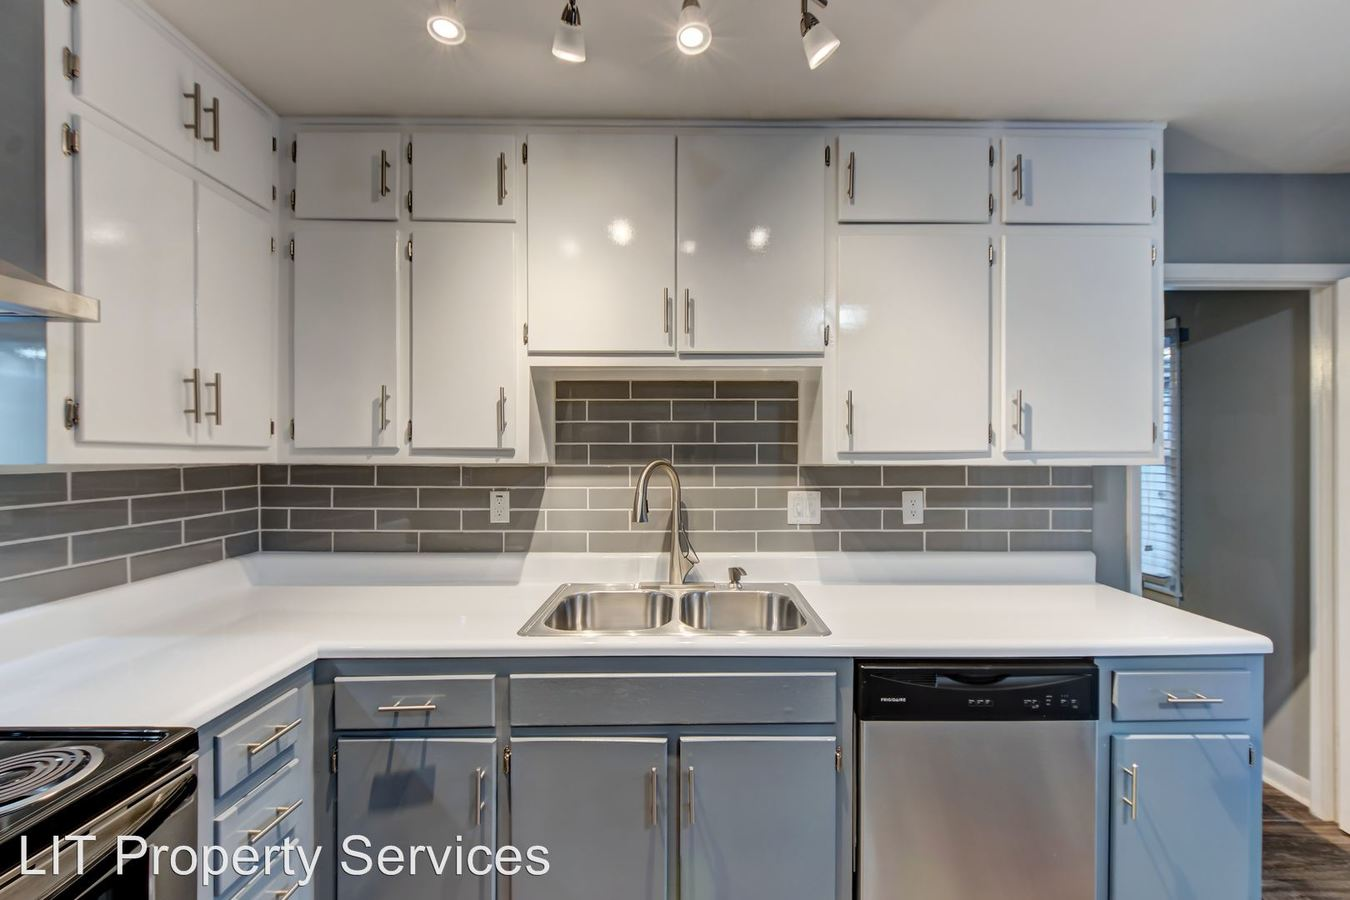 2 Bedrooms 1 Bathroom Apartment for rent at 3693-3735 Embry Circle in Chamblee, GA